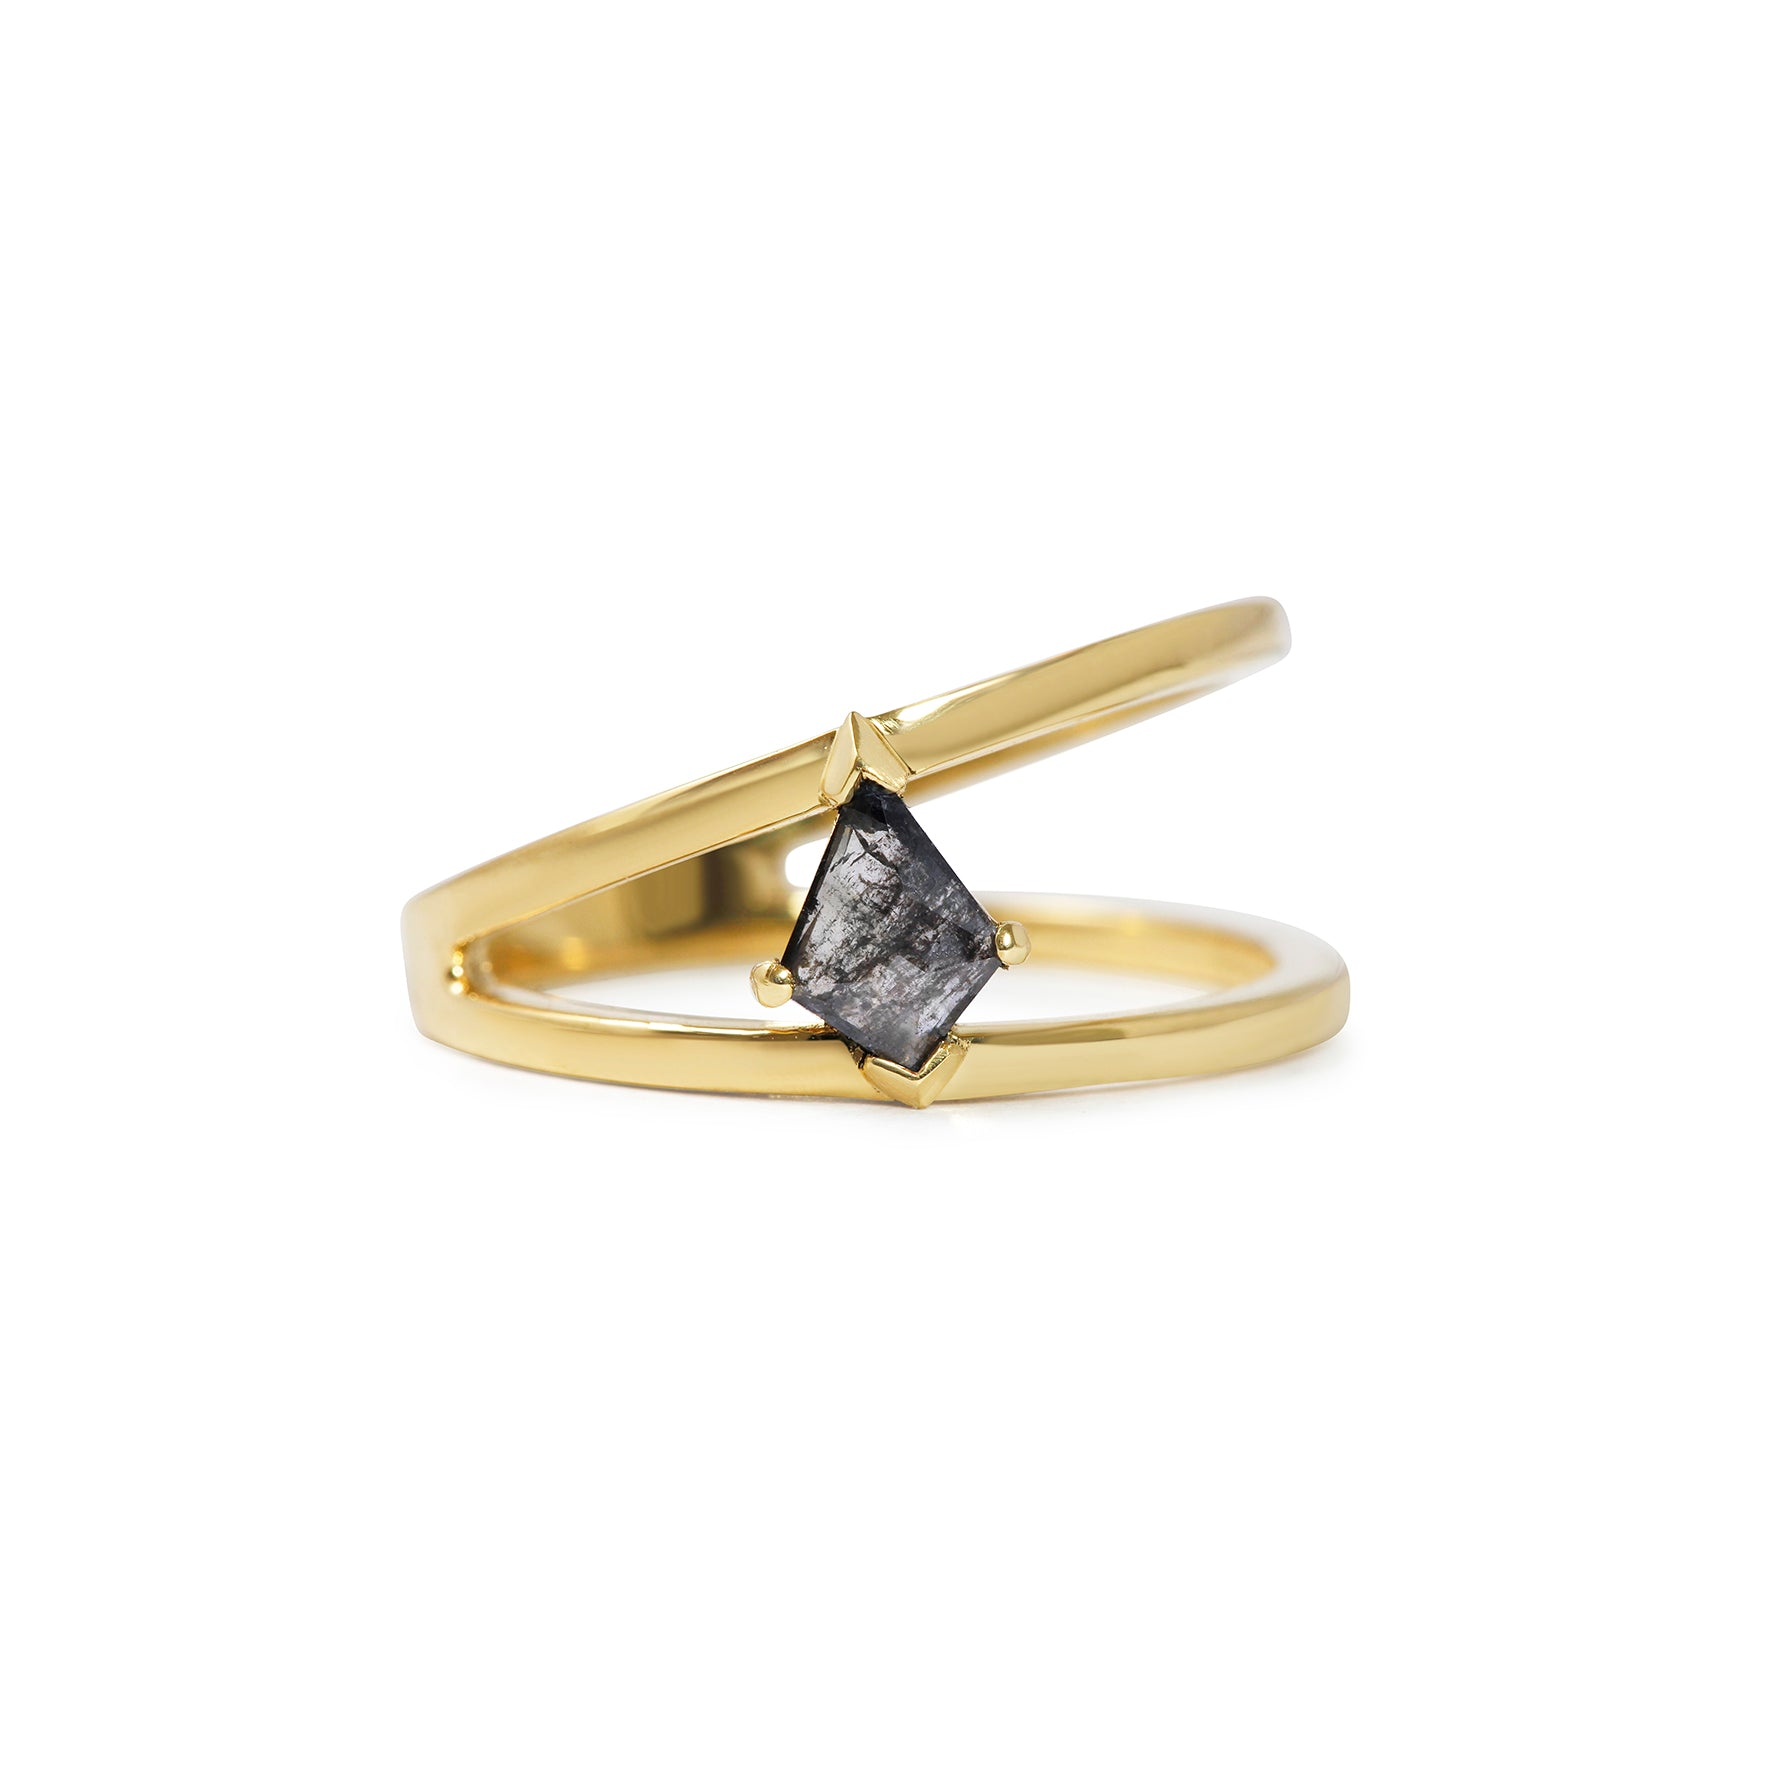 Black Kite Shape Diamond in Asymmetrical 18ct Yellow Gold Ring